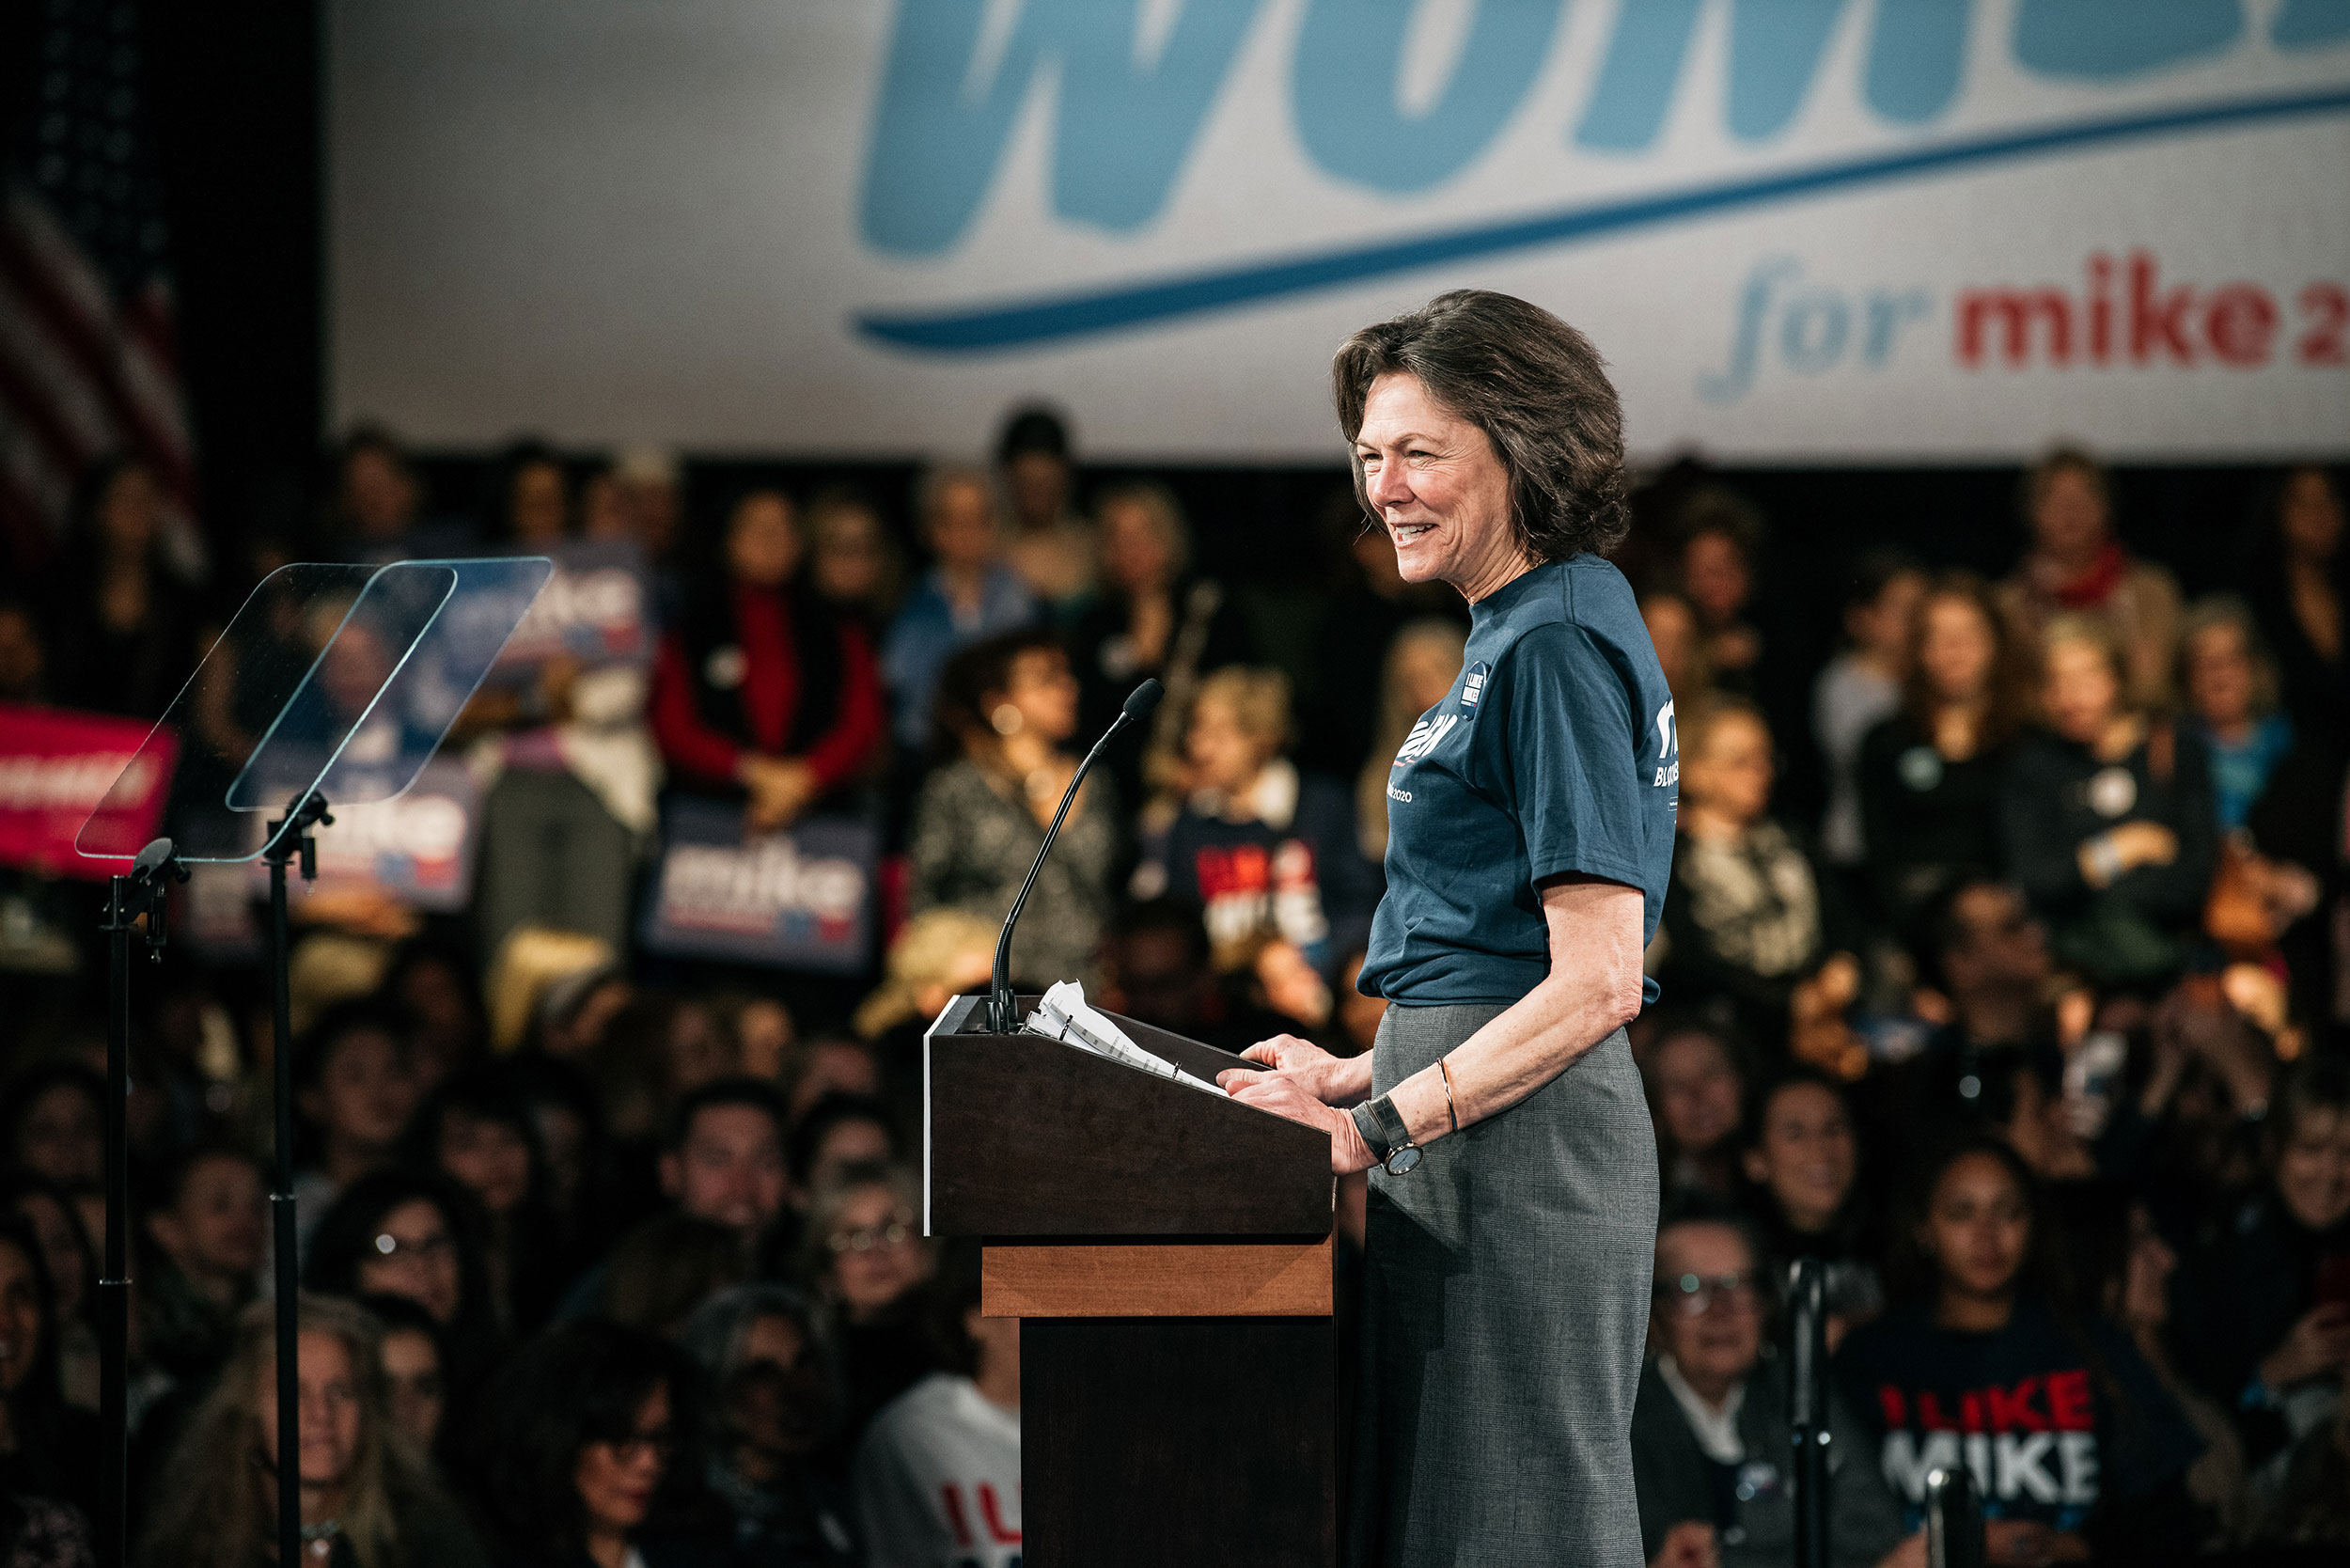 Diana Taylor speaks at a campaign rally for Michael Bloomberg on January 15 in New York.